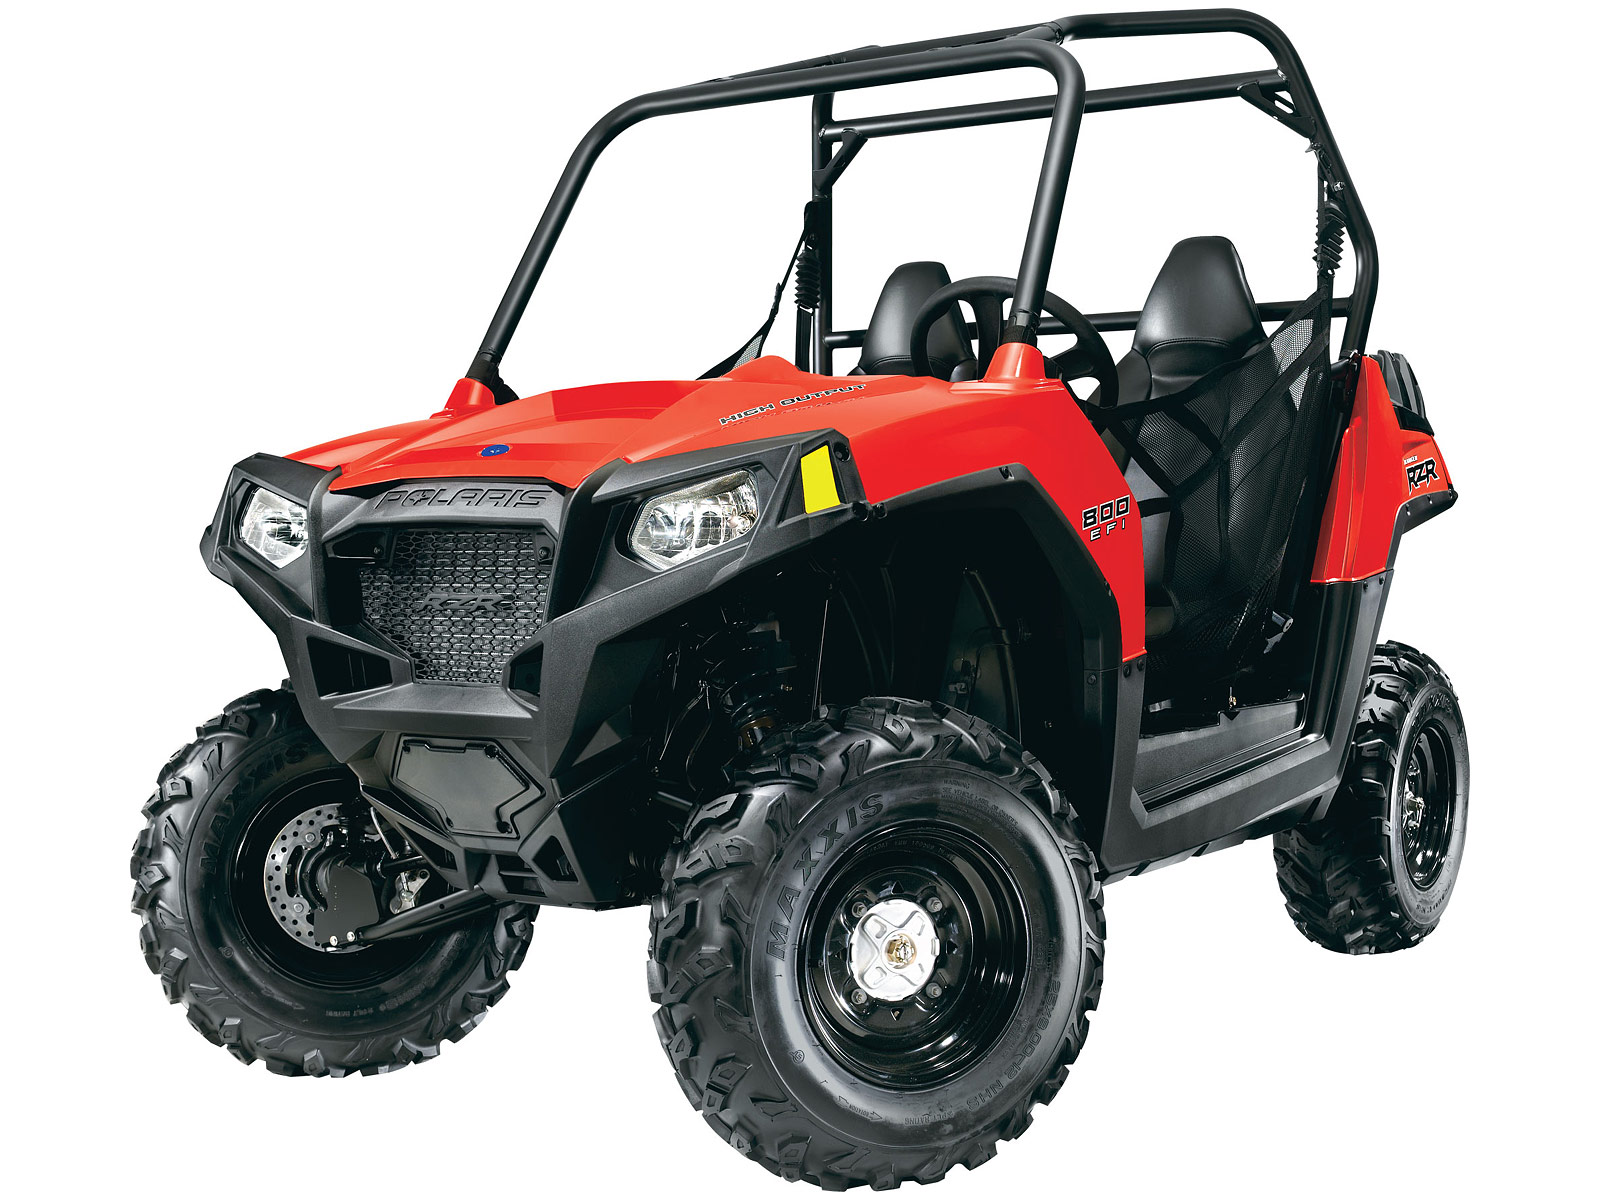 medium resolution of 2012 polaris ranger rzr 800 atv pictures 1